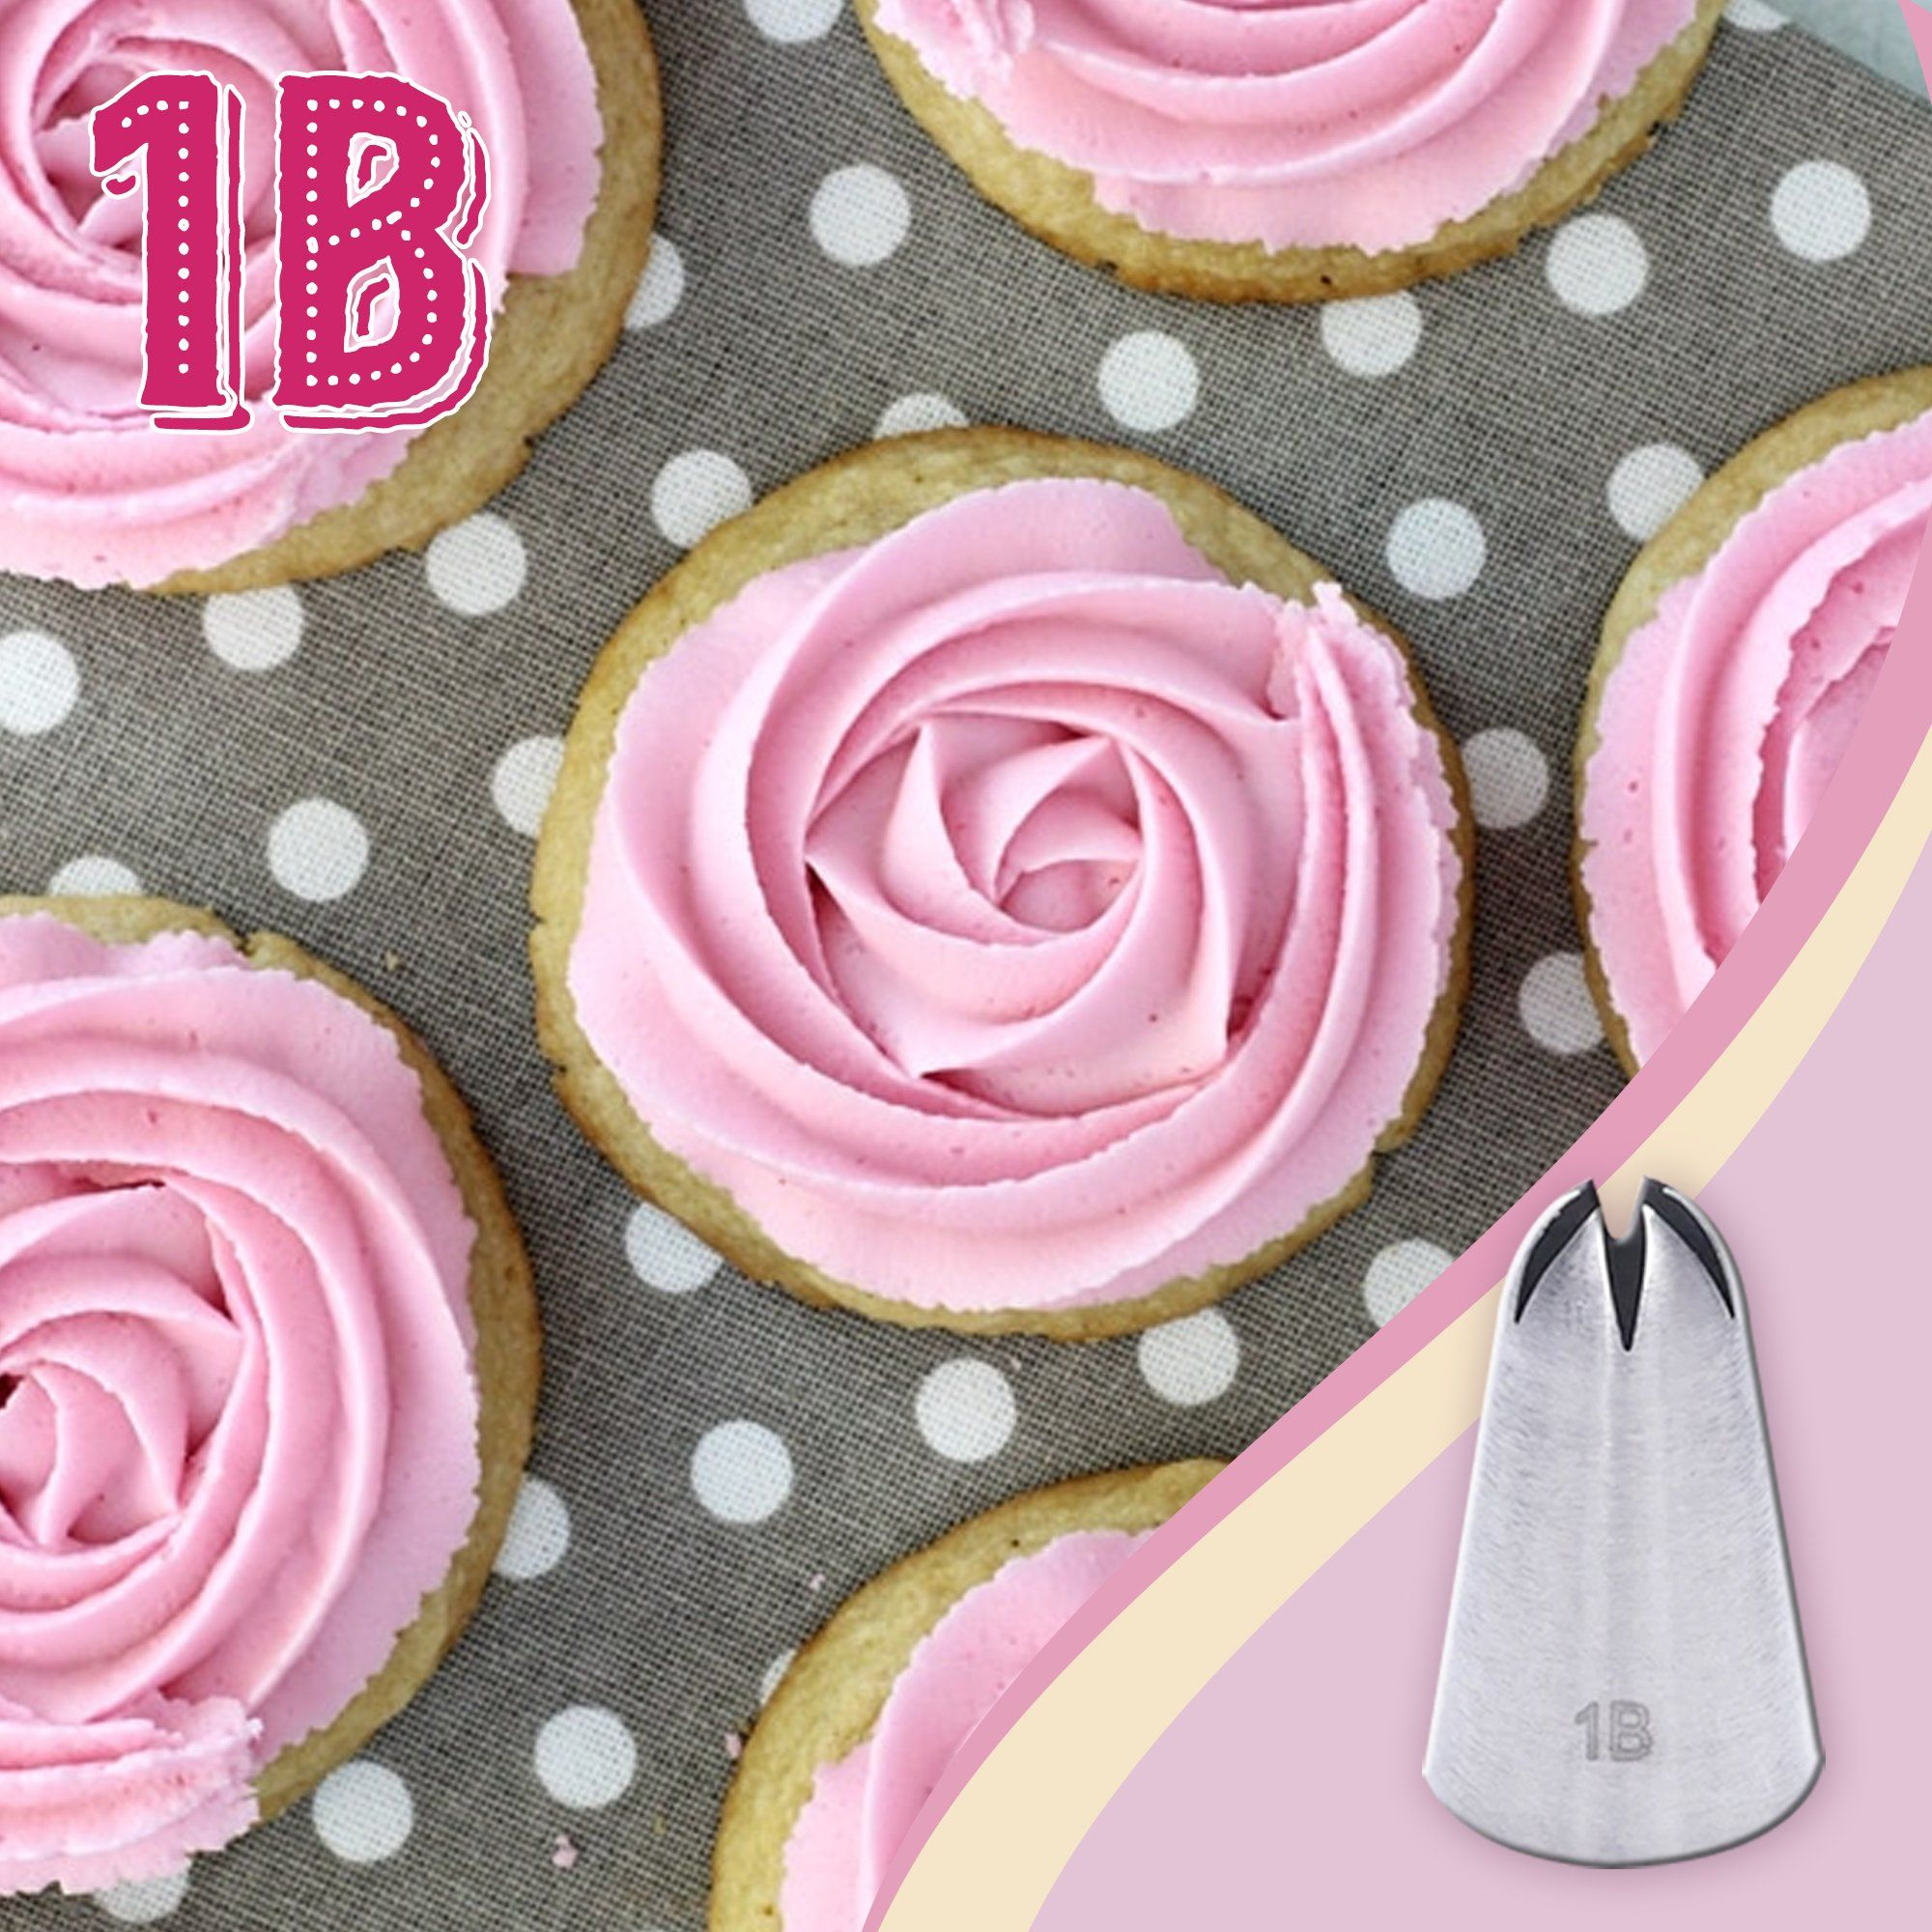 Large Size Rosette Icing Piping Nozzle (3pcs/Set) Kitchen DazzyCandy